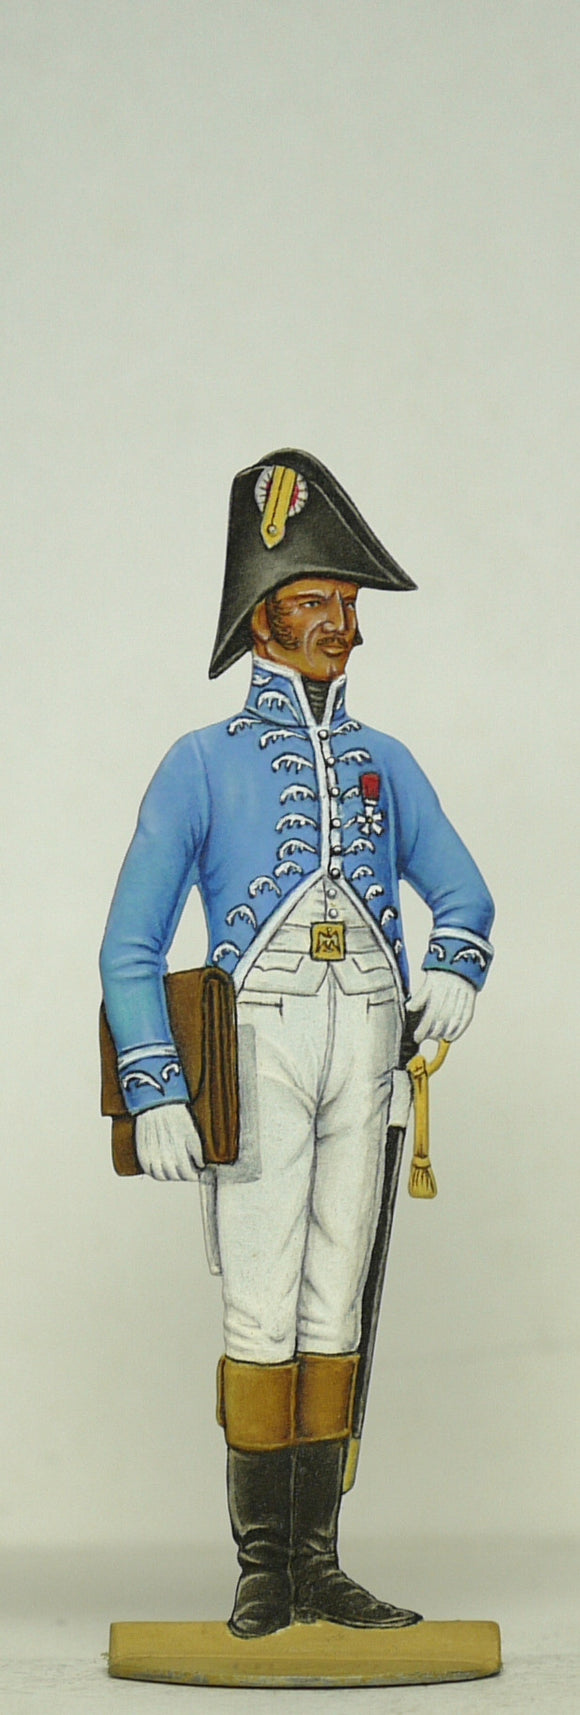 Yvan, Napoleons personal doctor - Glorious Empires-Historical Miniatures